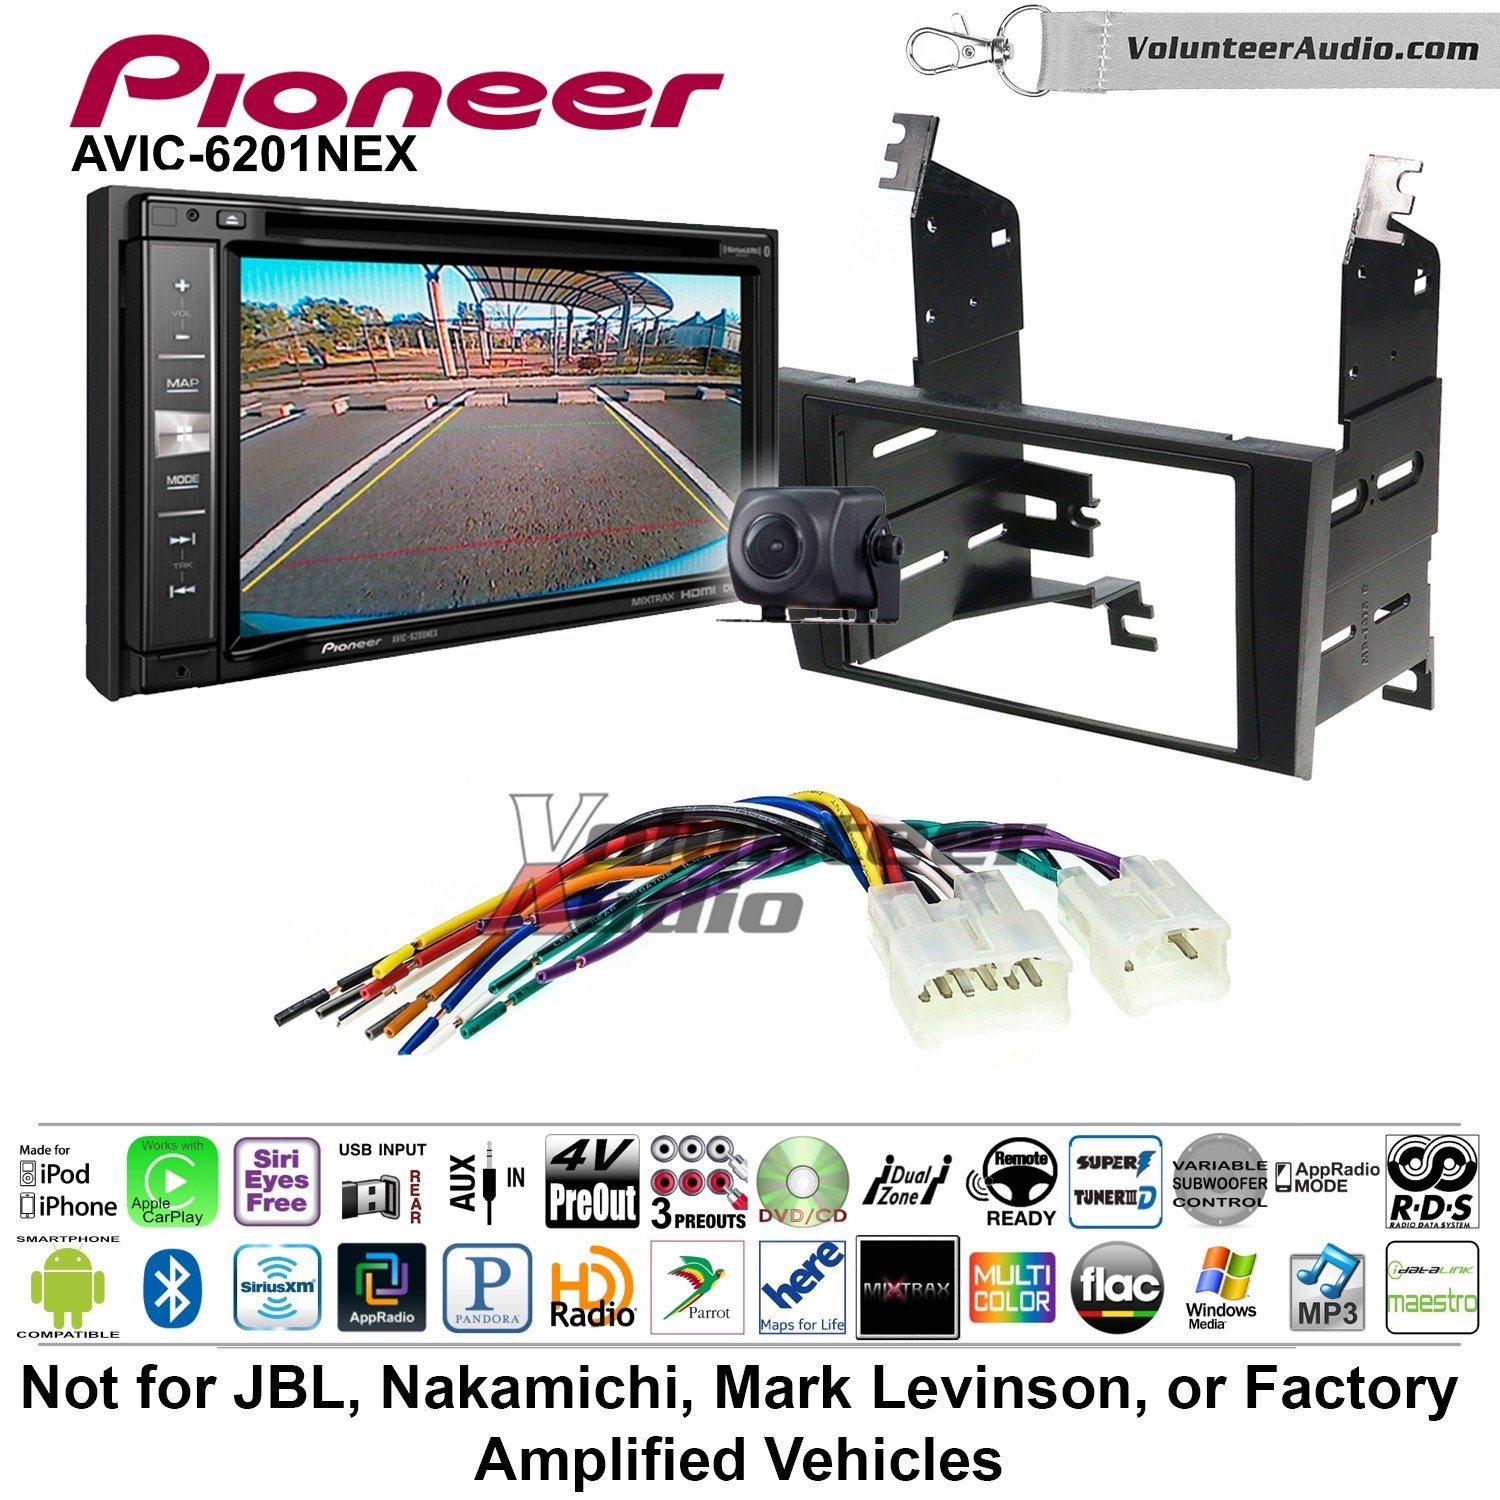 Pioneeer AVIC-6201NEX Double Din Radio Install Kit with GPS Navigation Apple CarPlay Android Auto Fits 1998-2005 Lexus GS Series by Pioneeer Volunteer Audio (Image #1)